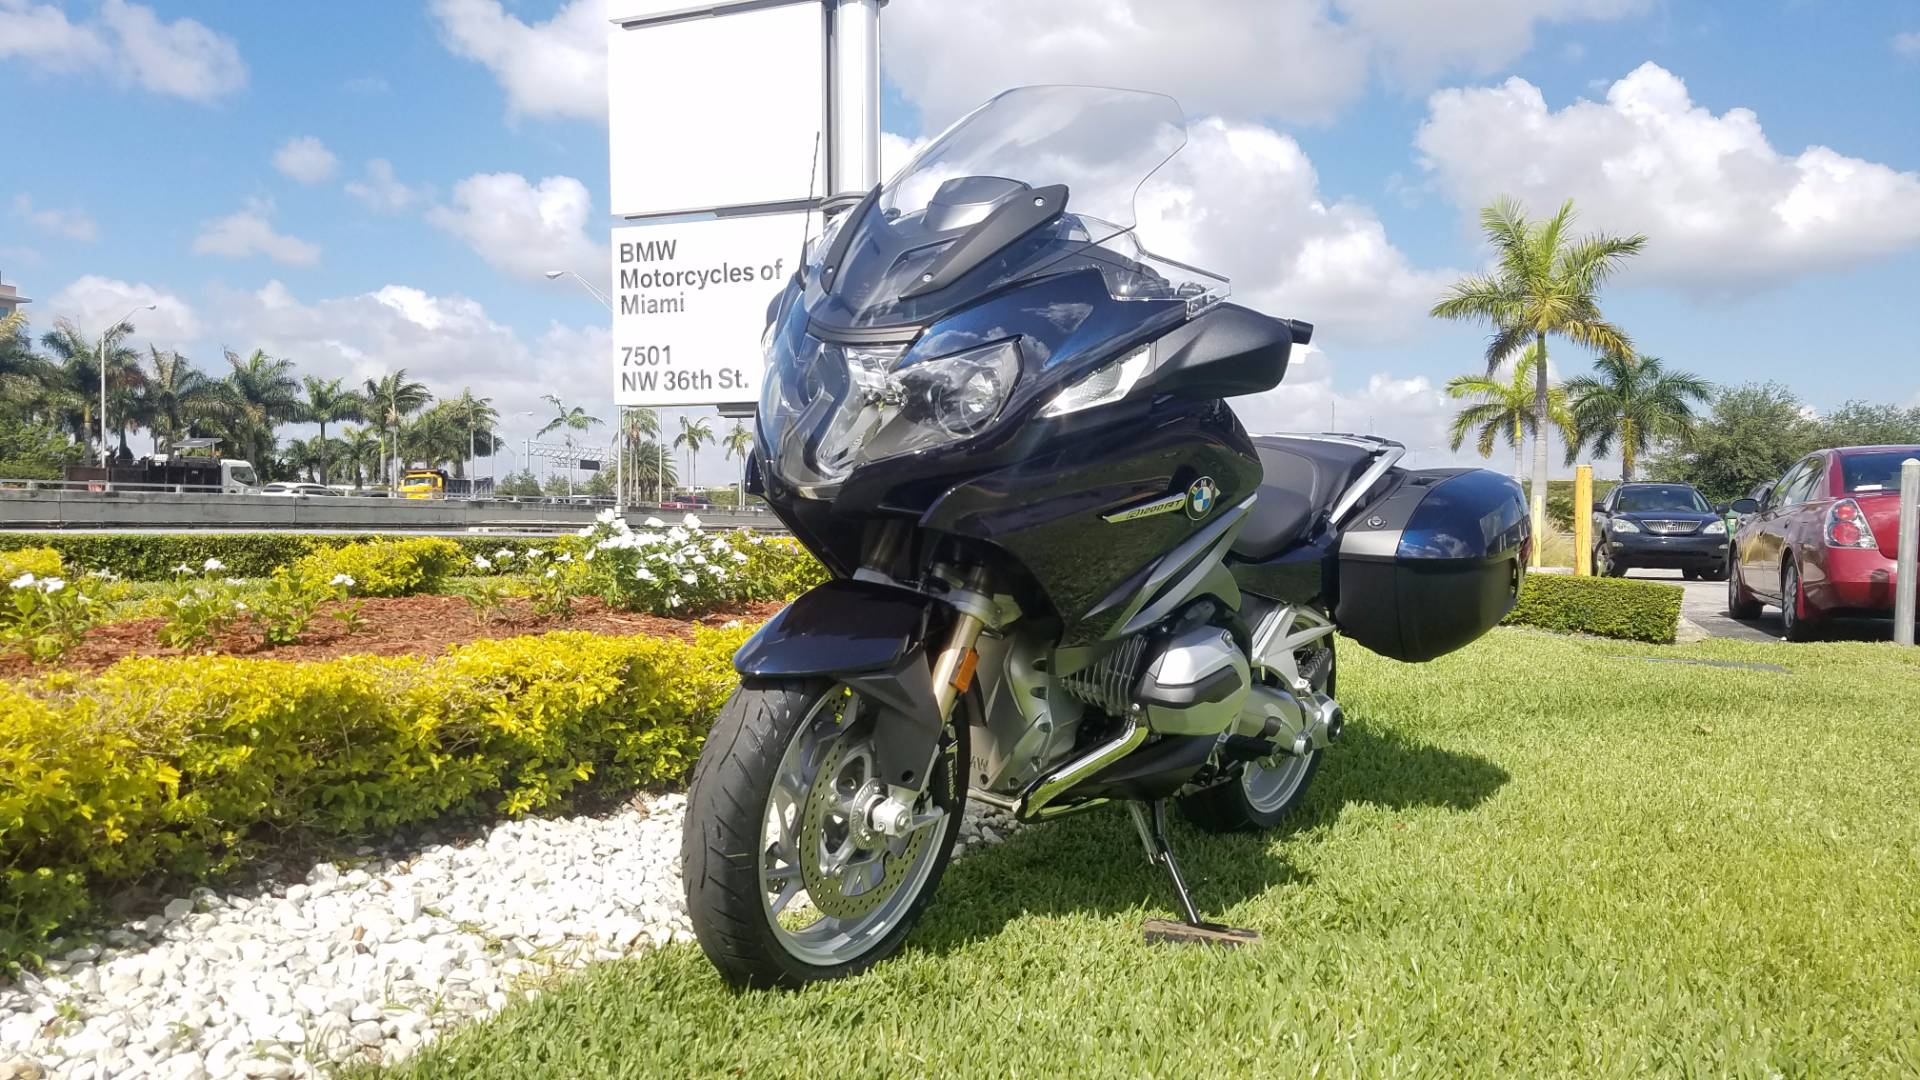 new 2017 bmw r 1200 rt motorcycles in miami, fl